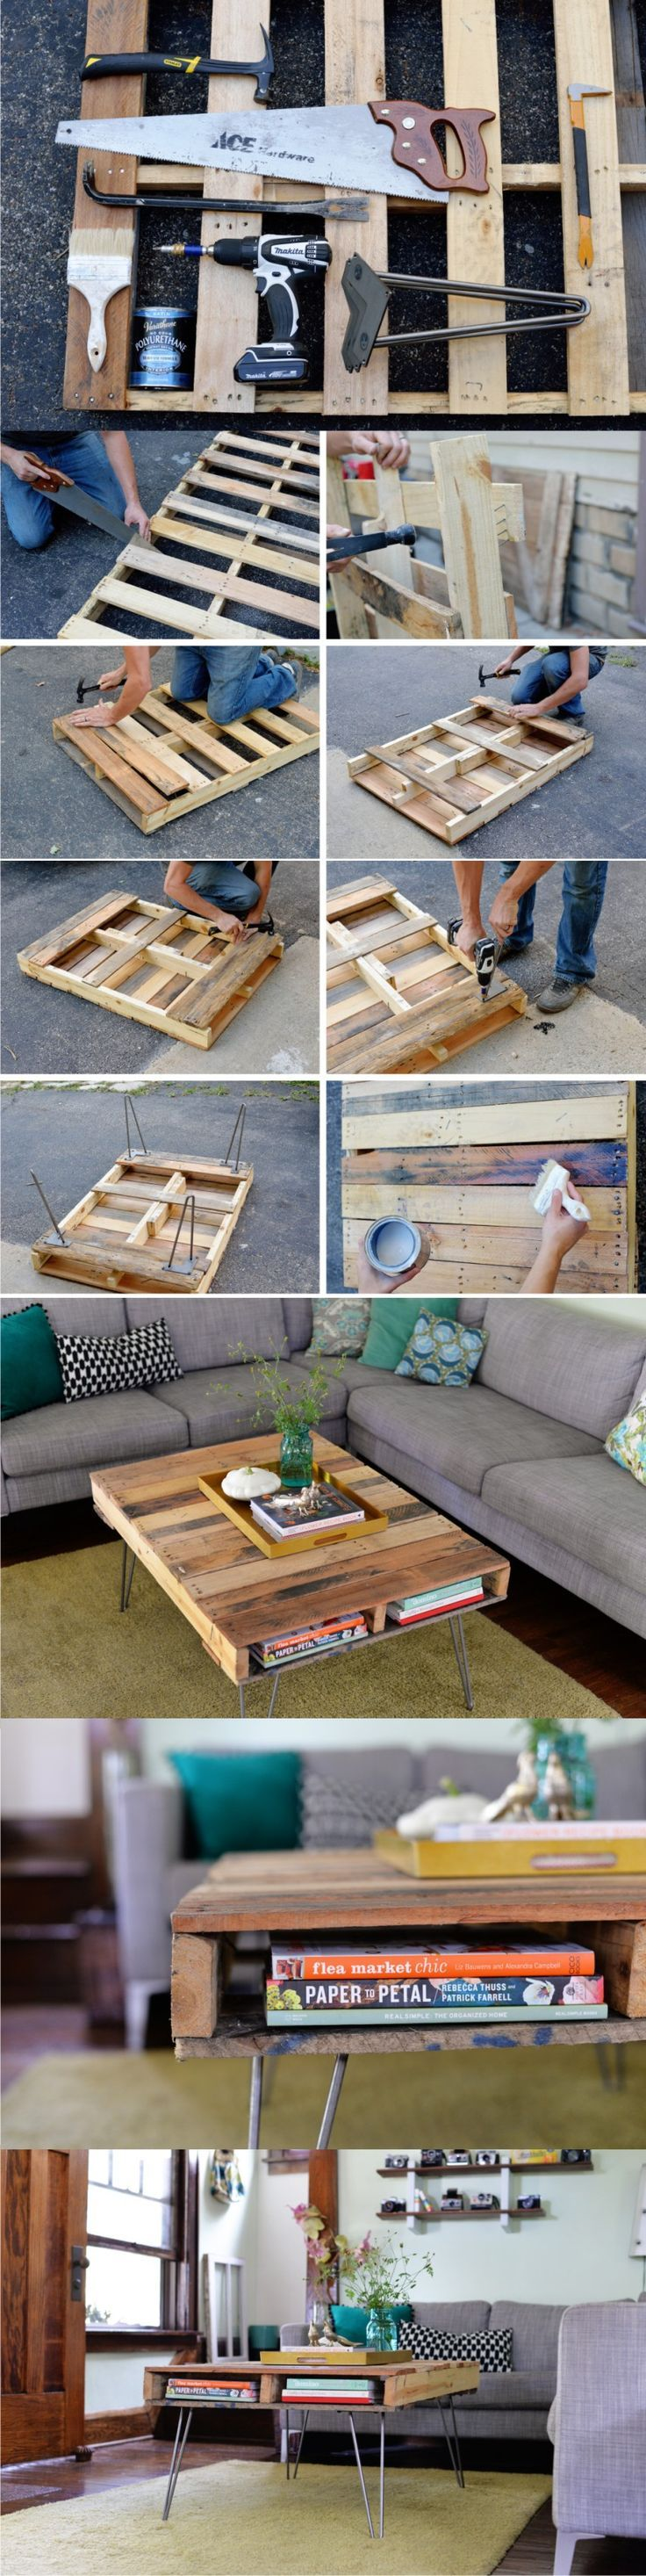 #DIY : transformer une palette en table basse…